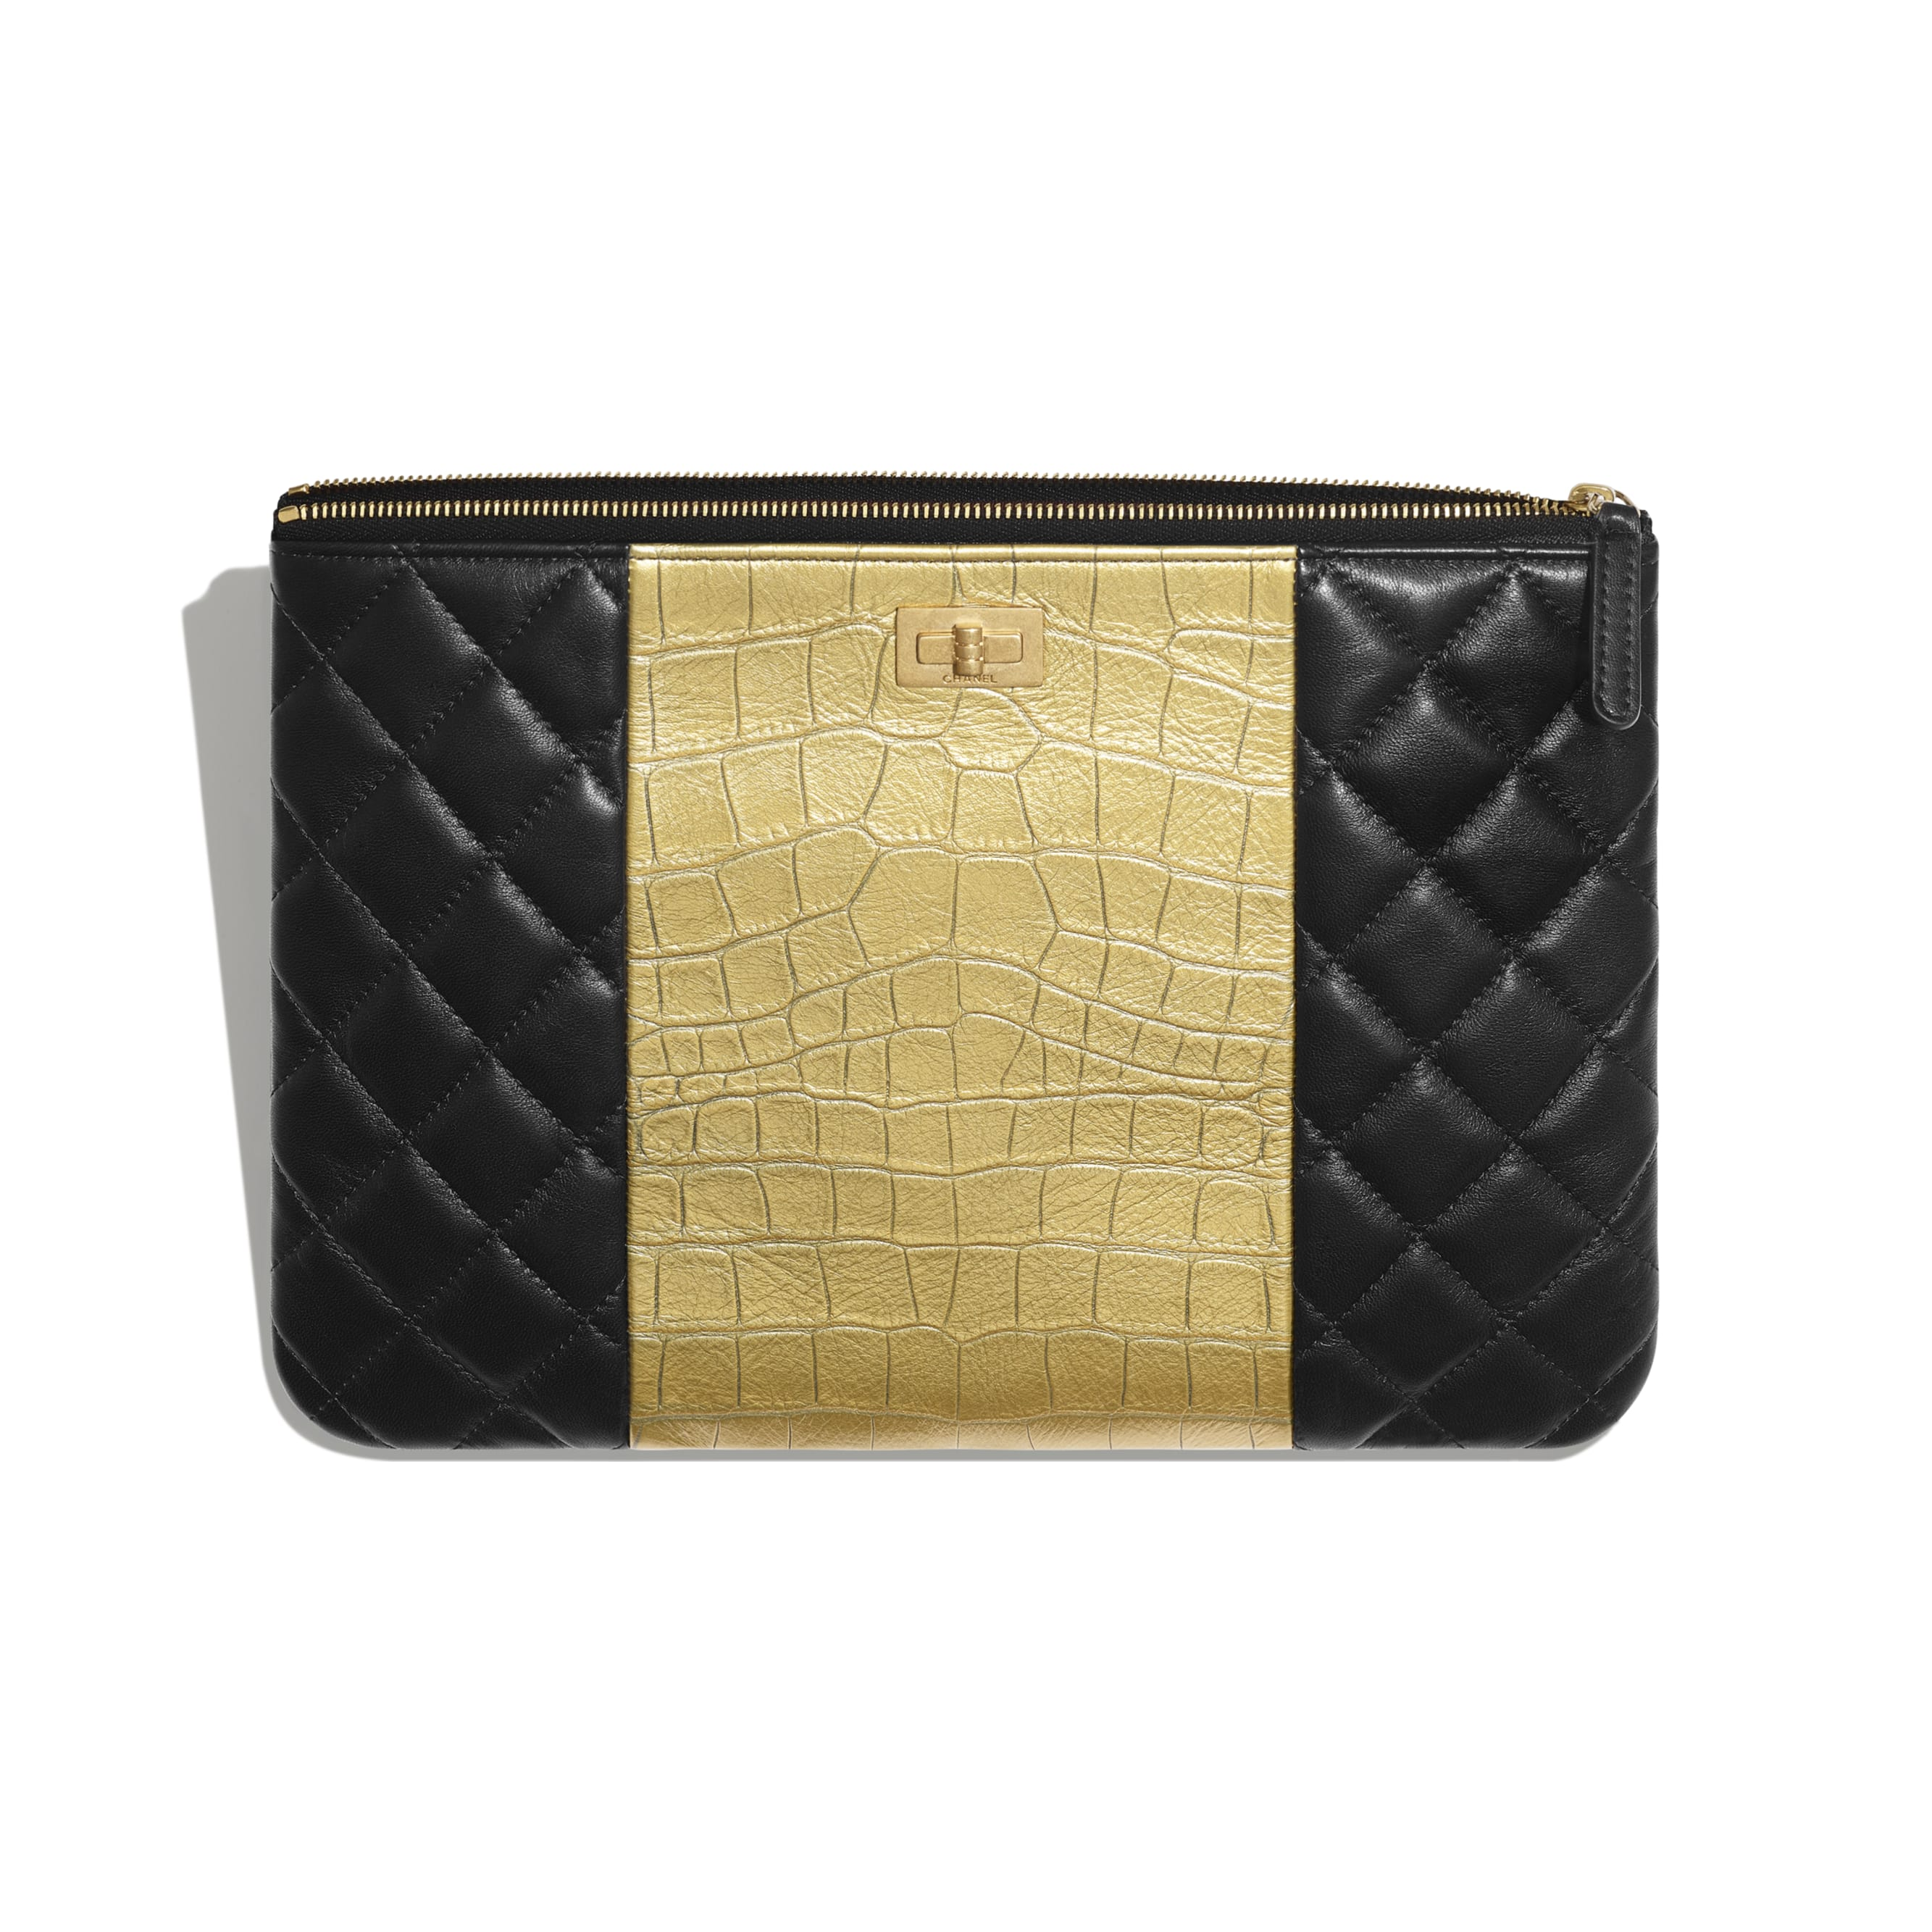 2.55 Pouch - Black & Gold - Lambskin, Crocodile Embossed Calfskin & Gold-Tone Metal - Other view - see standard sized version